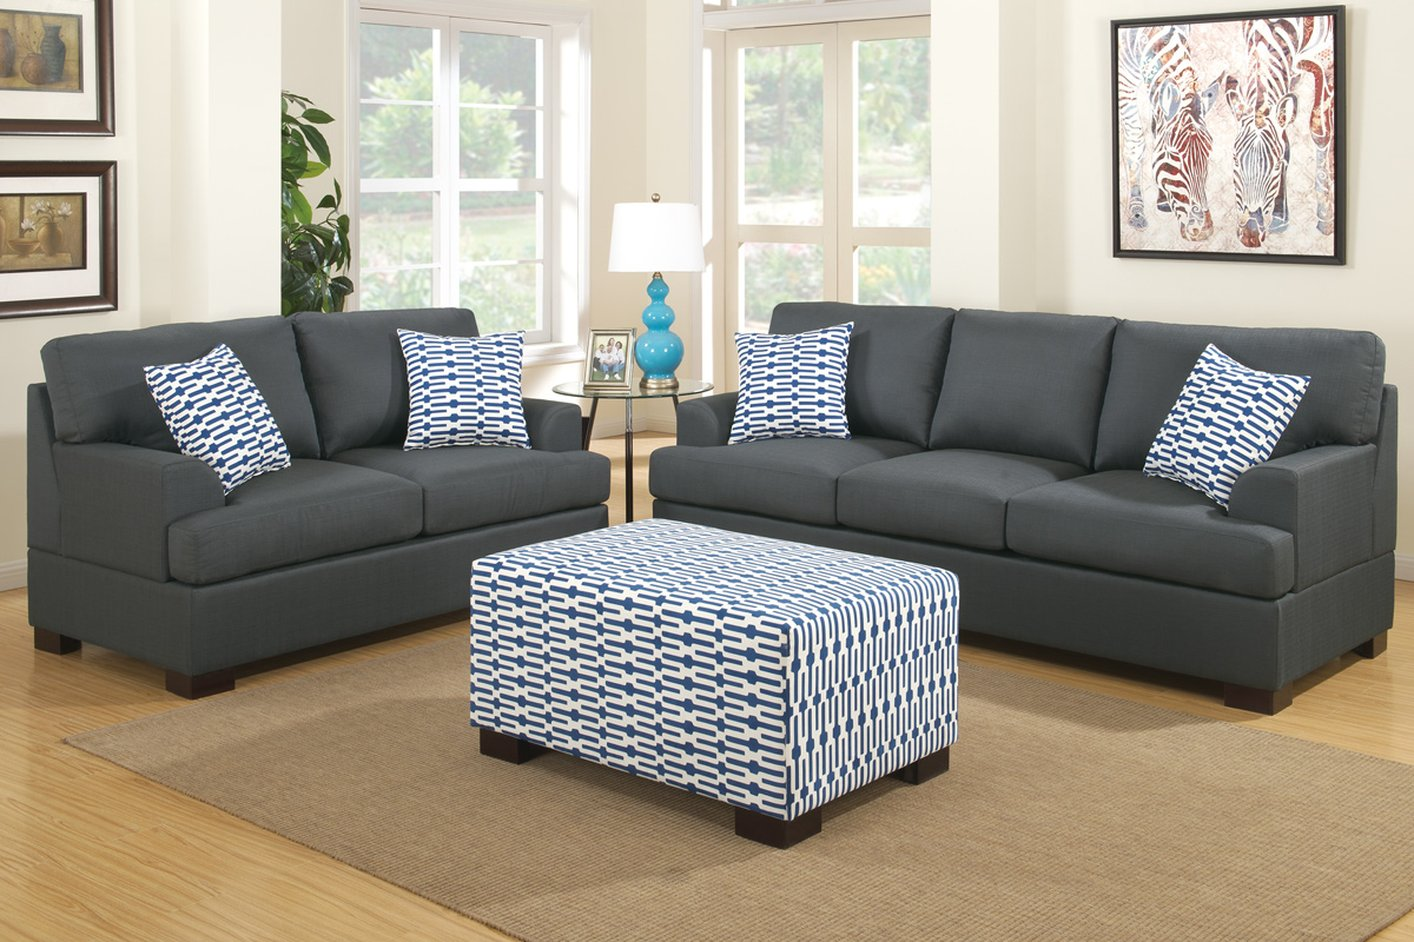 Steal A Sofa Furniture Outlet: Camille Black Fabric Loveseat